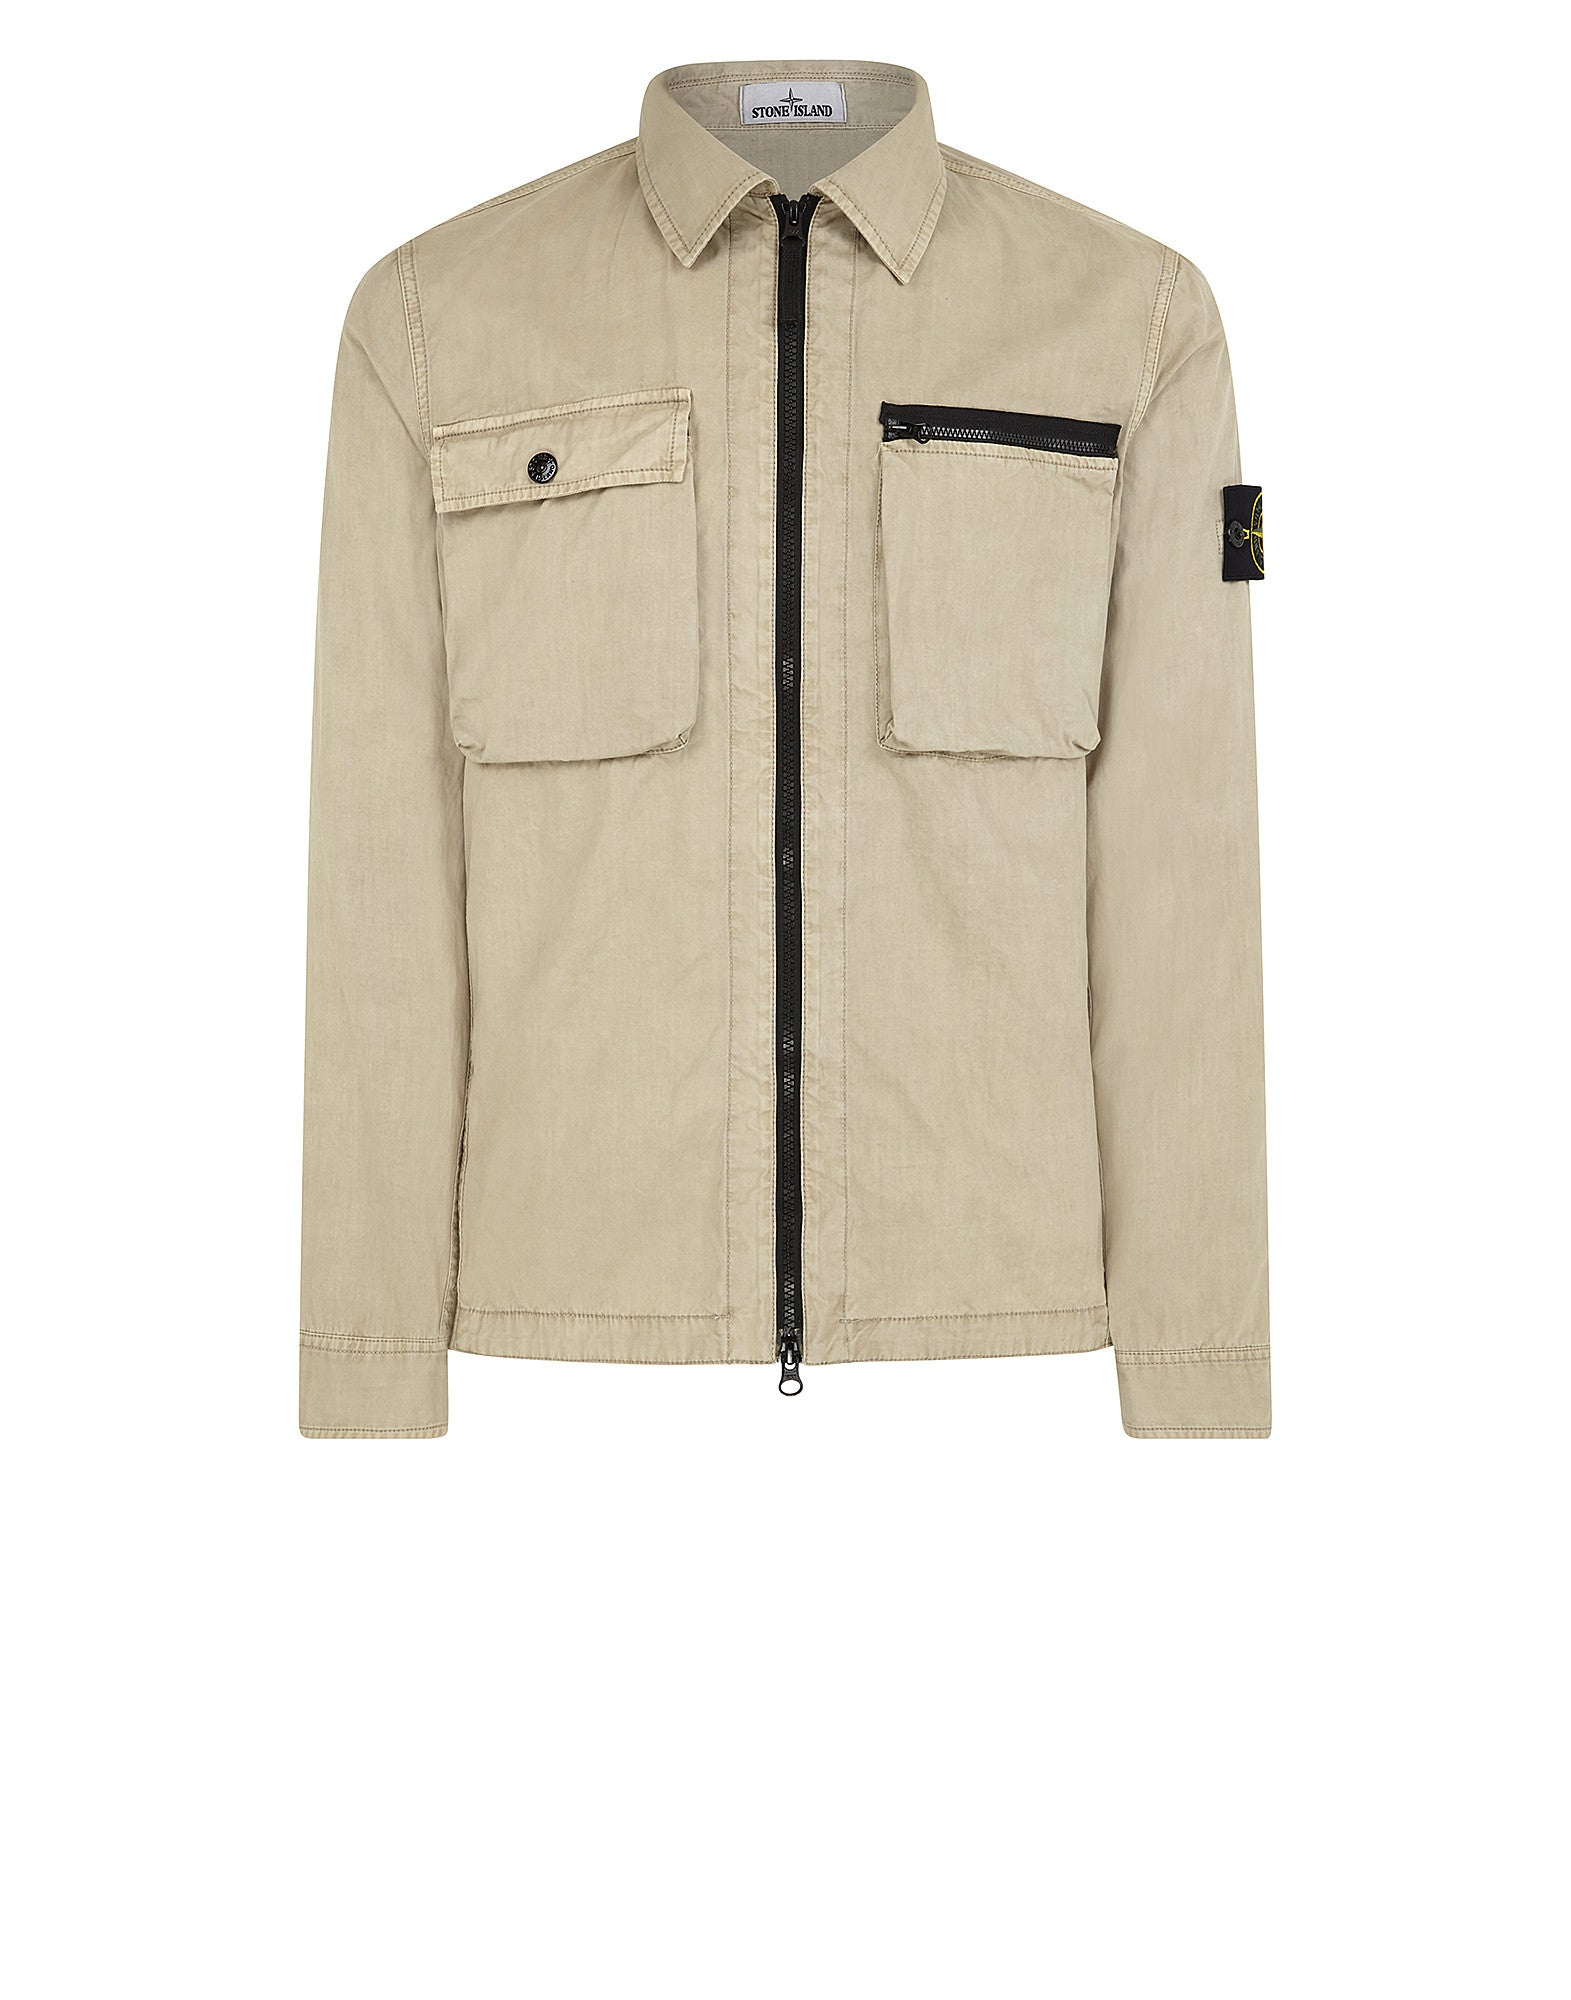 101WN T.CO+OLD Overshirt in Beige